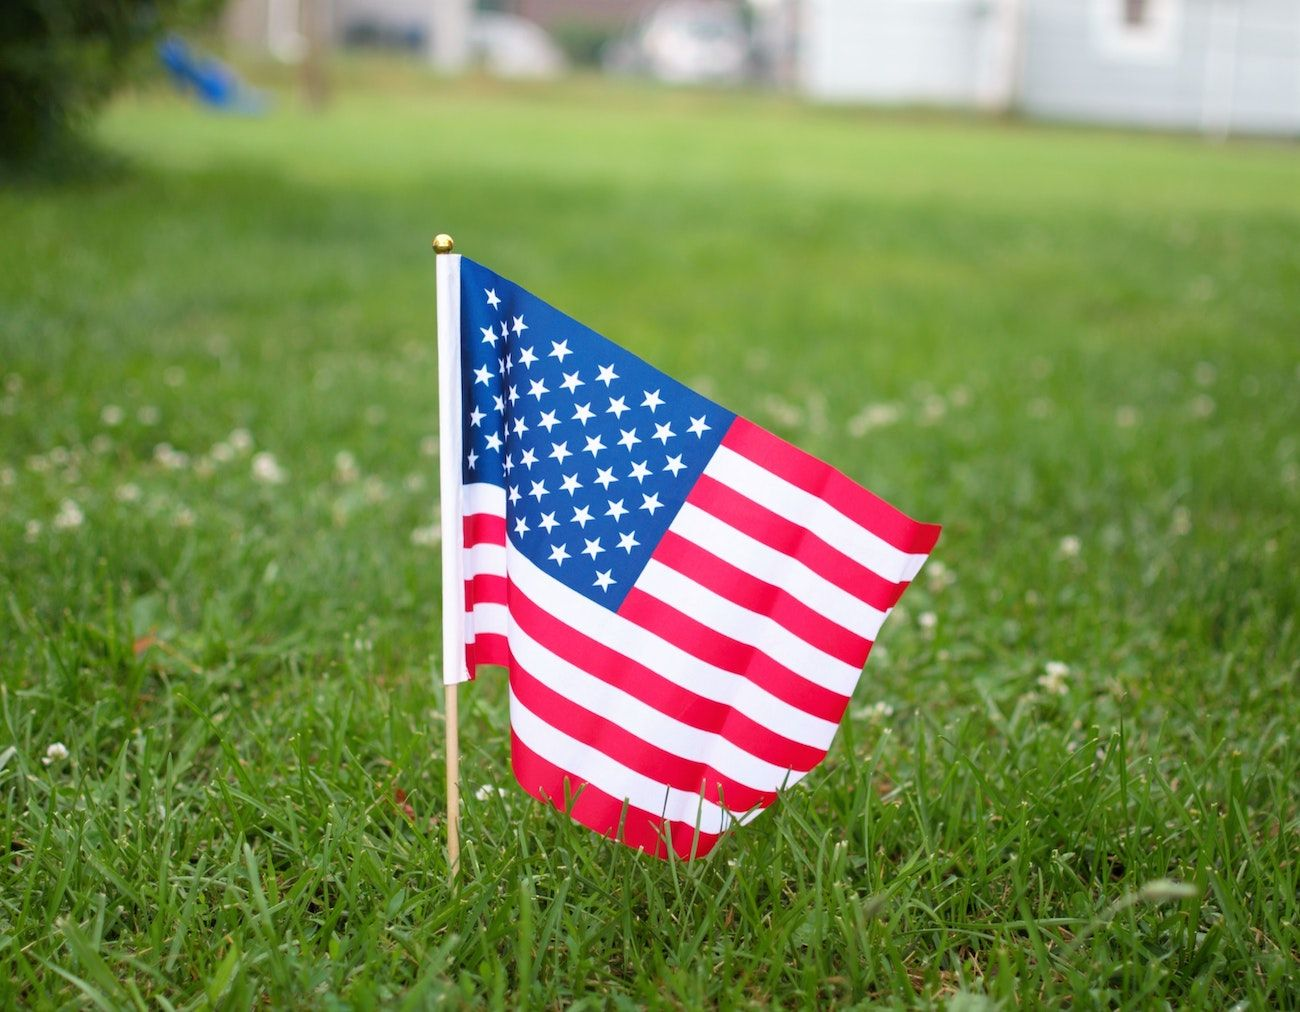 What has the American Dream become?